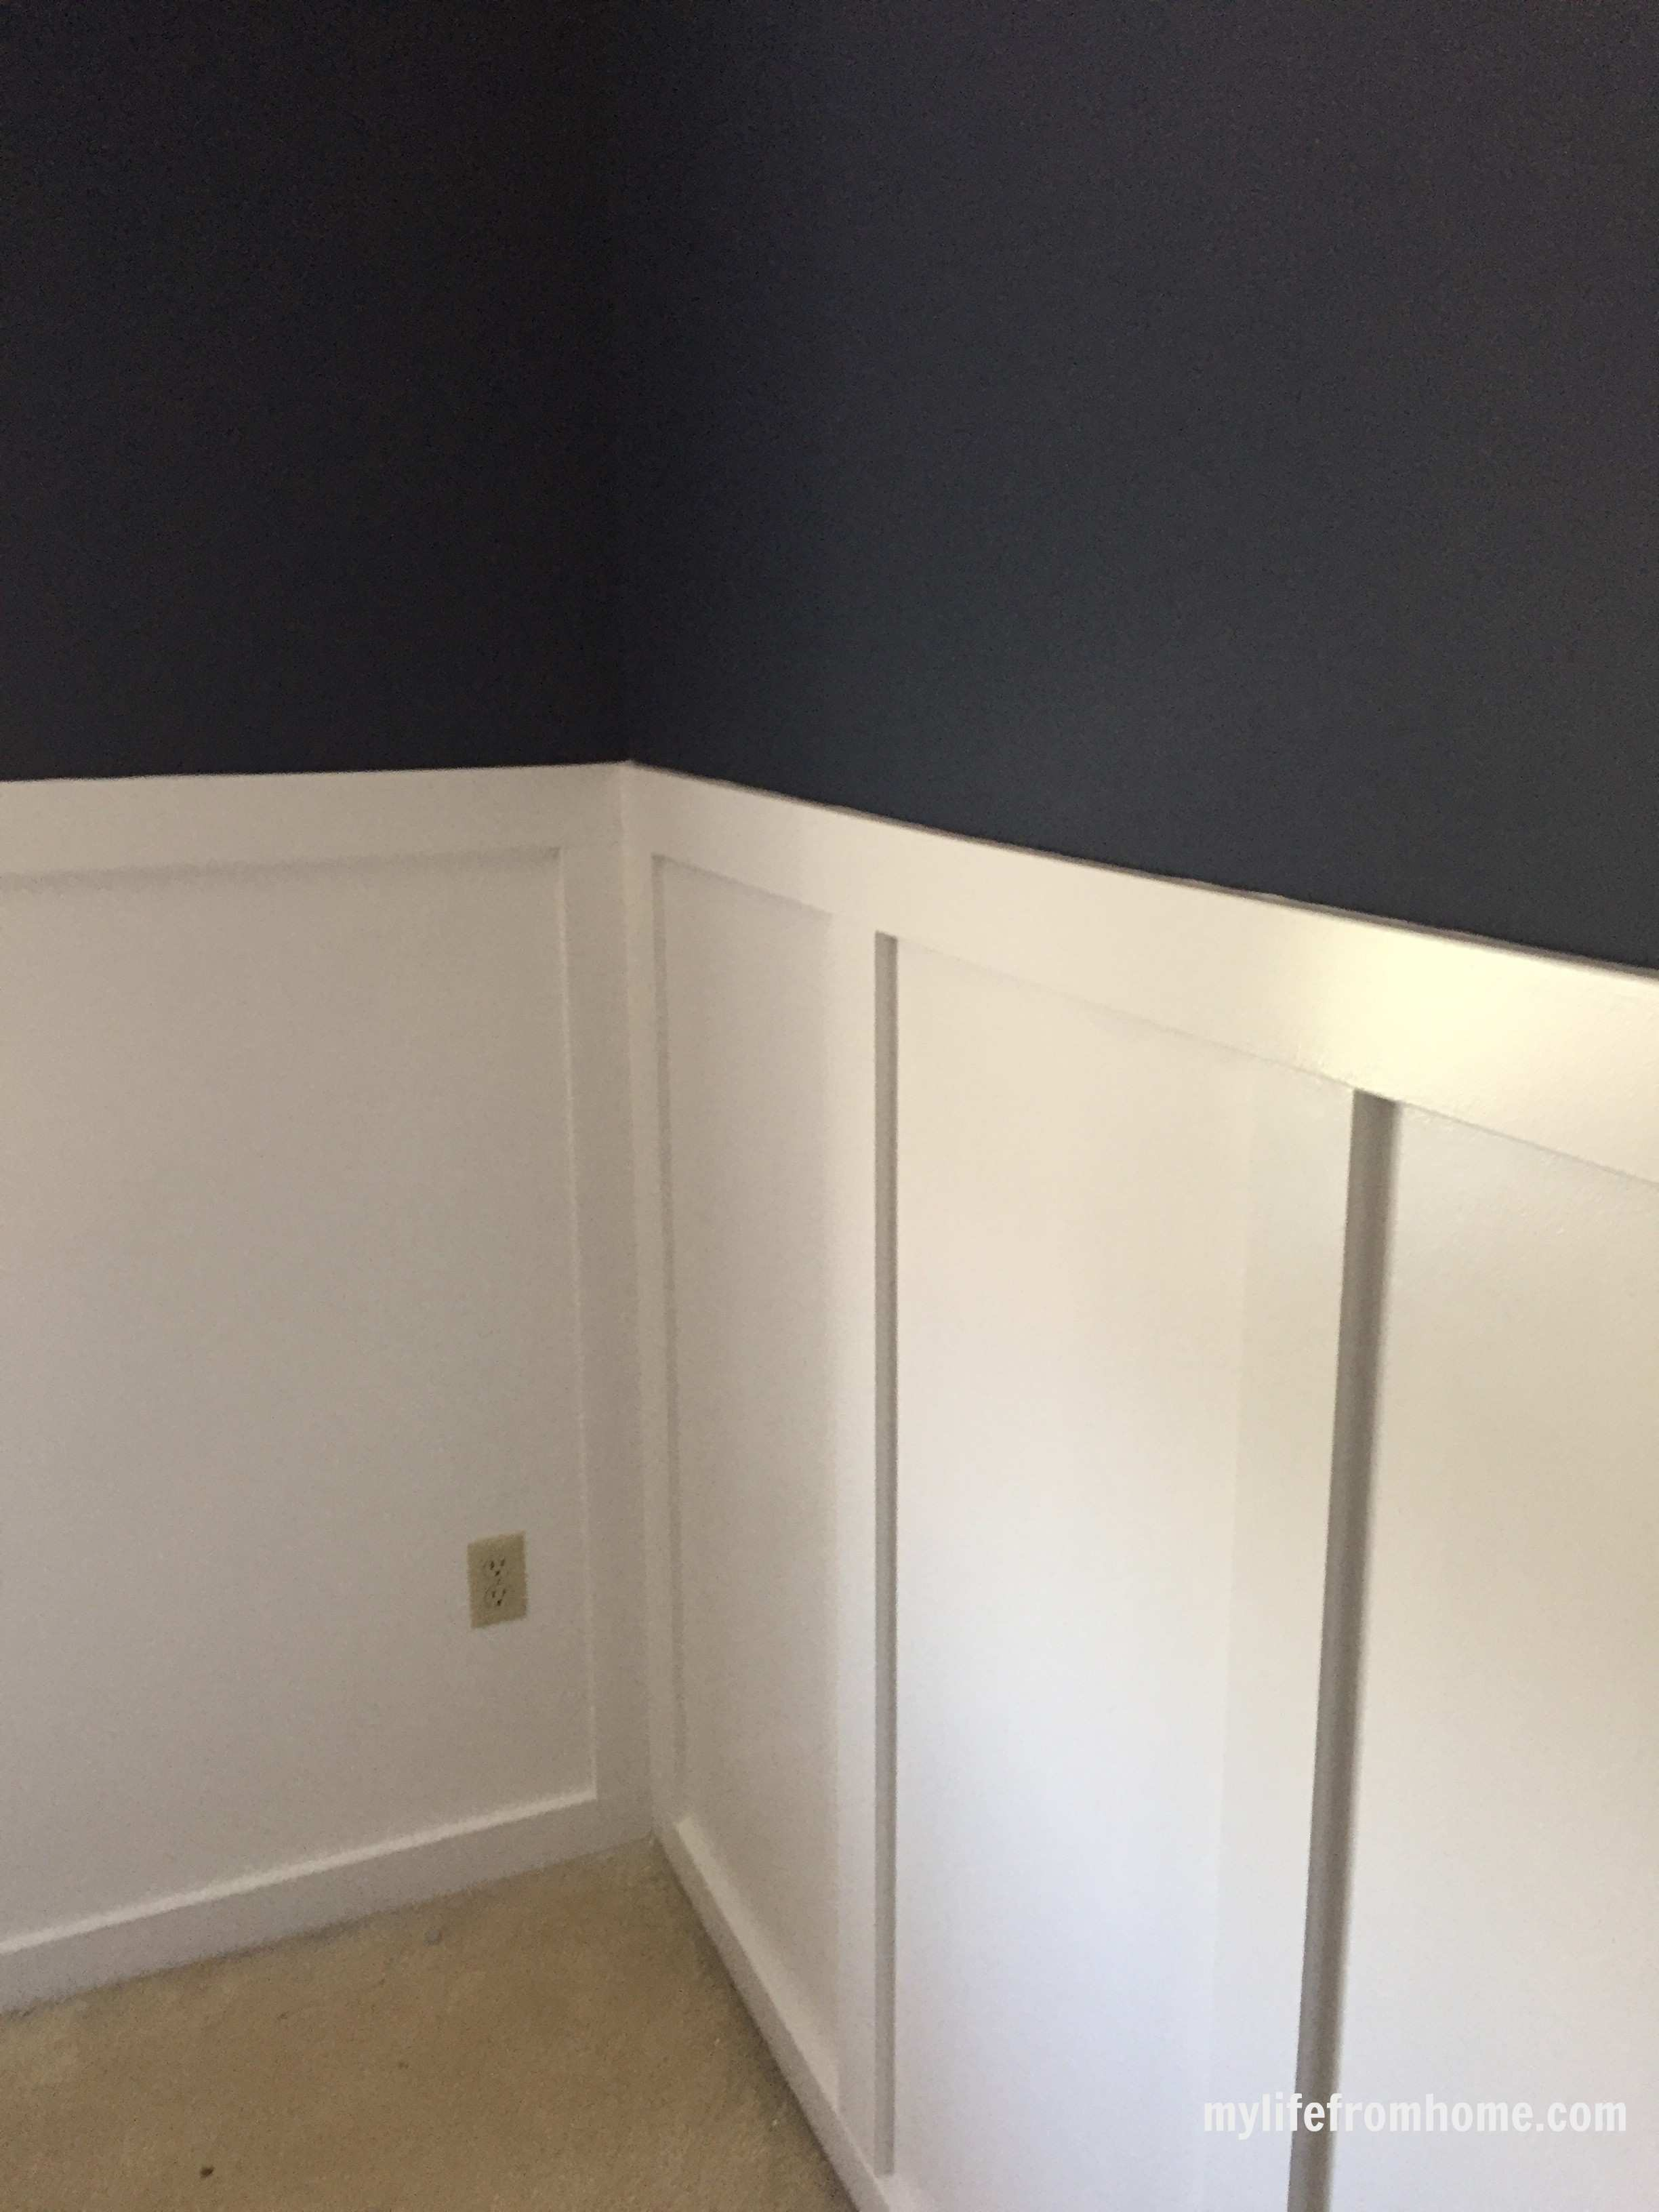 Sherwin Williams Naval by www.whitecottagehomeandliving.com